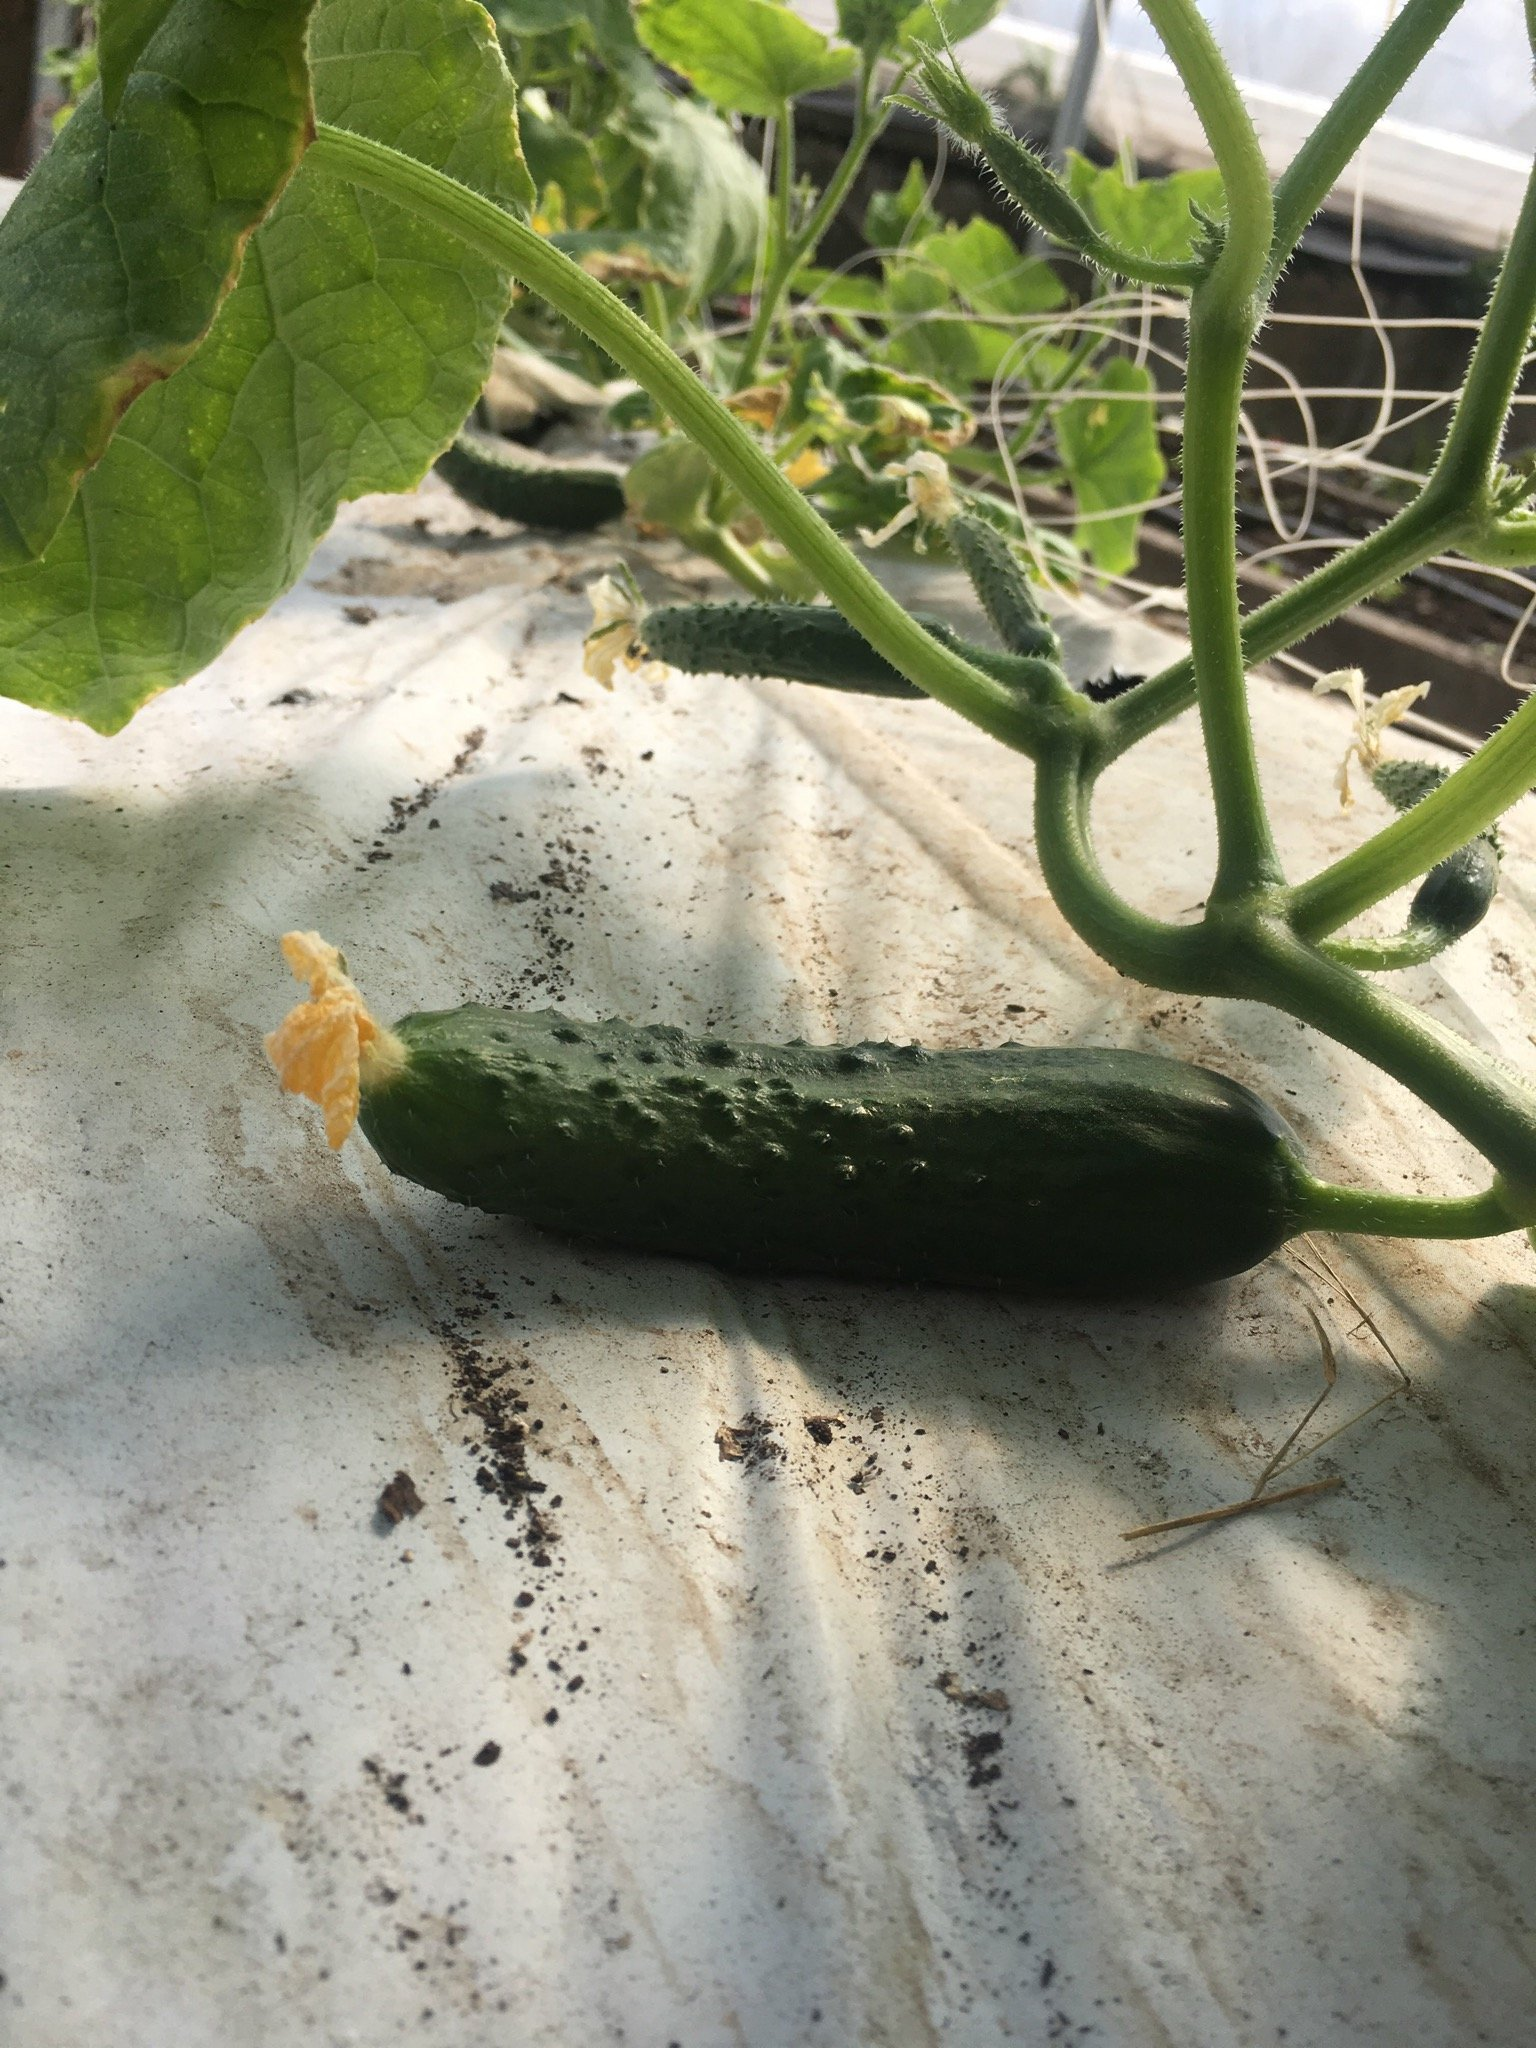 The Battle For The Cucumbers